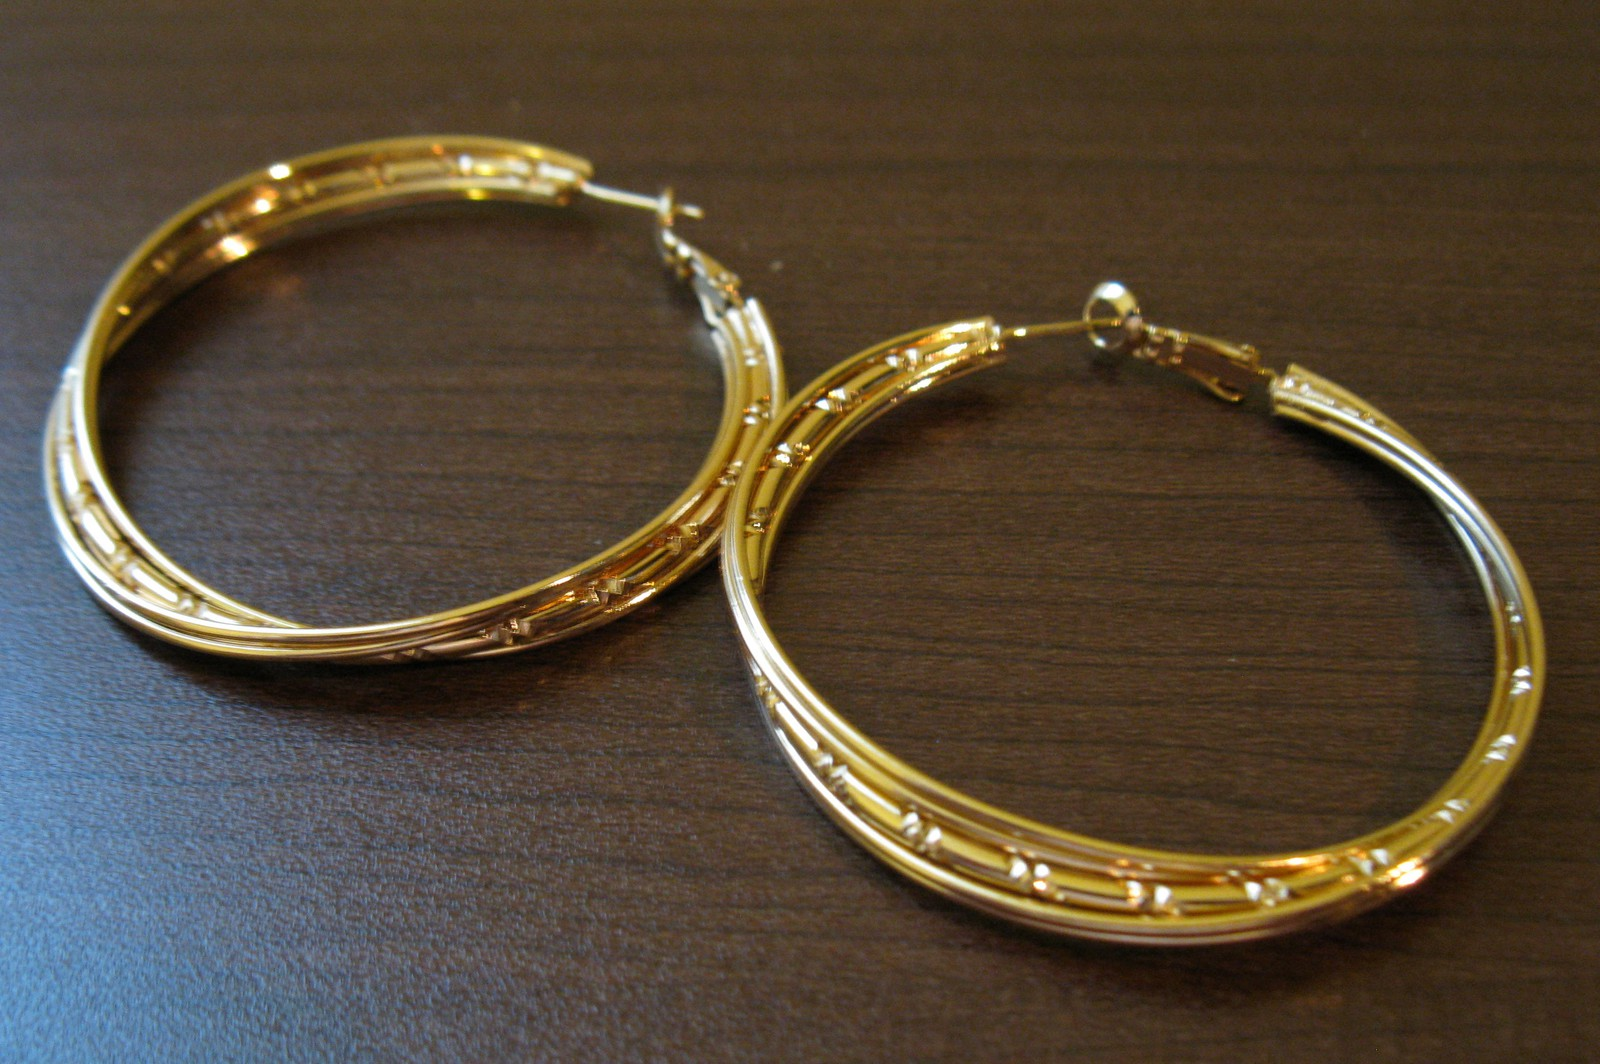 Perfect for summer outfits and more, these large 14K yellow gold hoop earrings for her feature a realistic bamboo design. The earrings are secured with snap-lock backs.